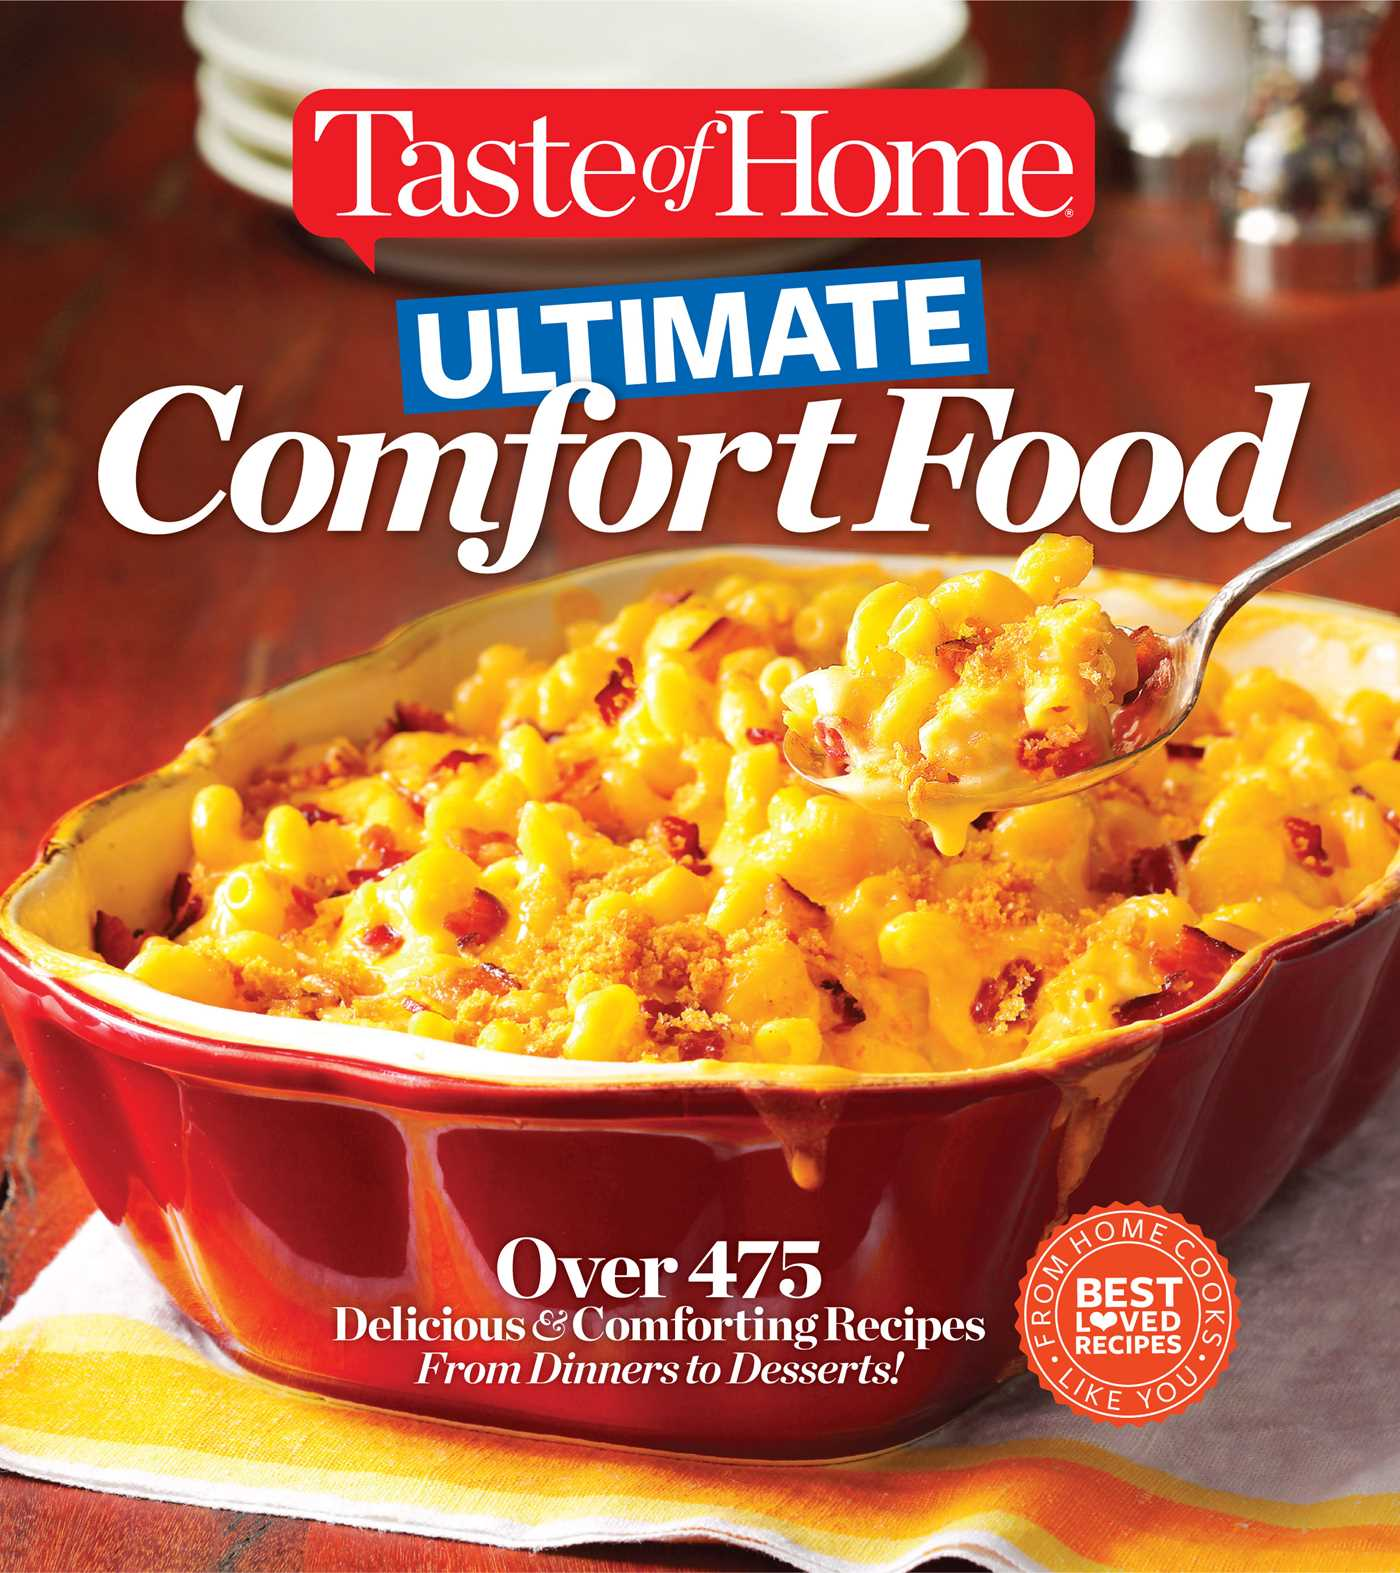 Taste of home ultimate comfort food 9781617653216 hr